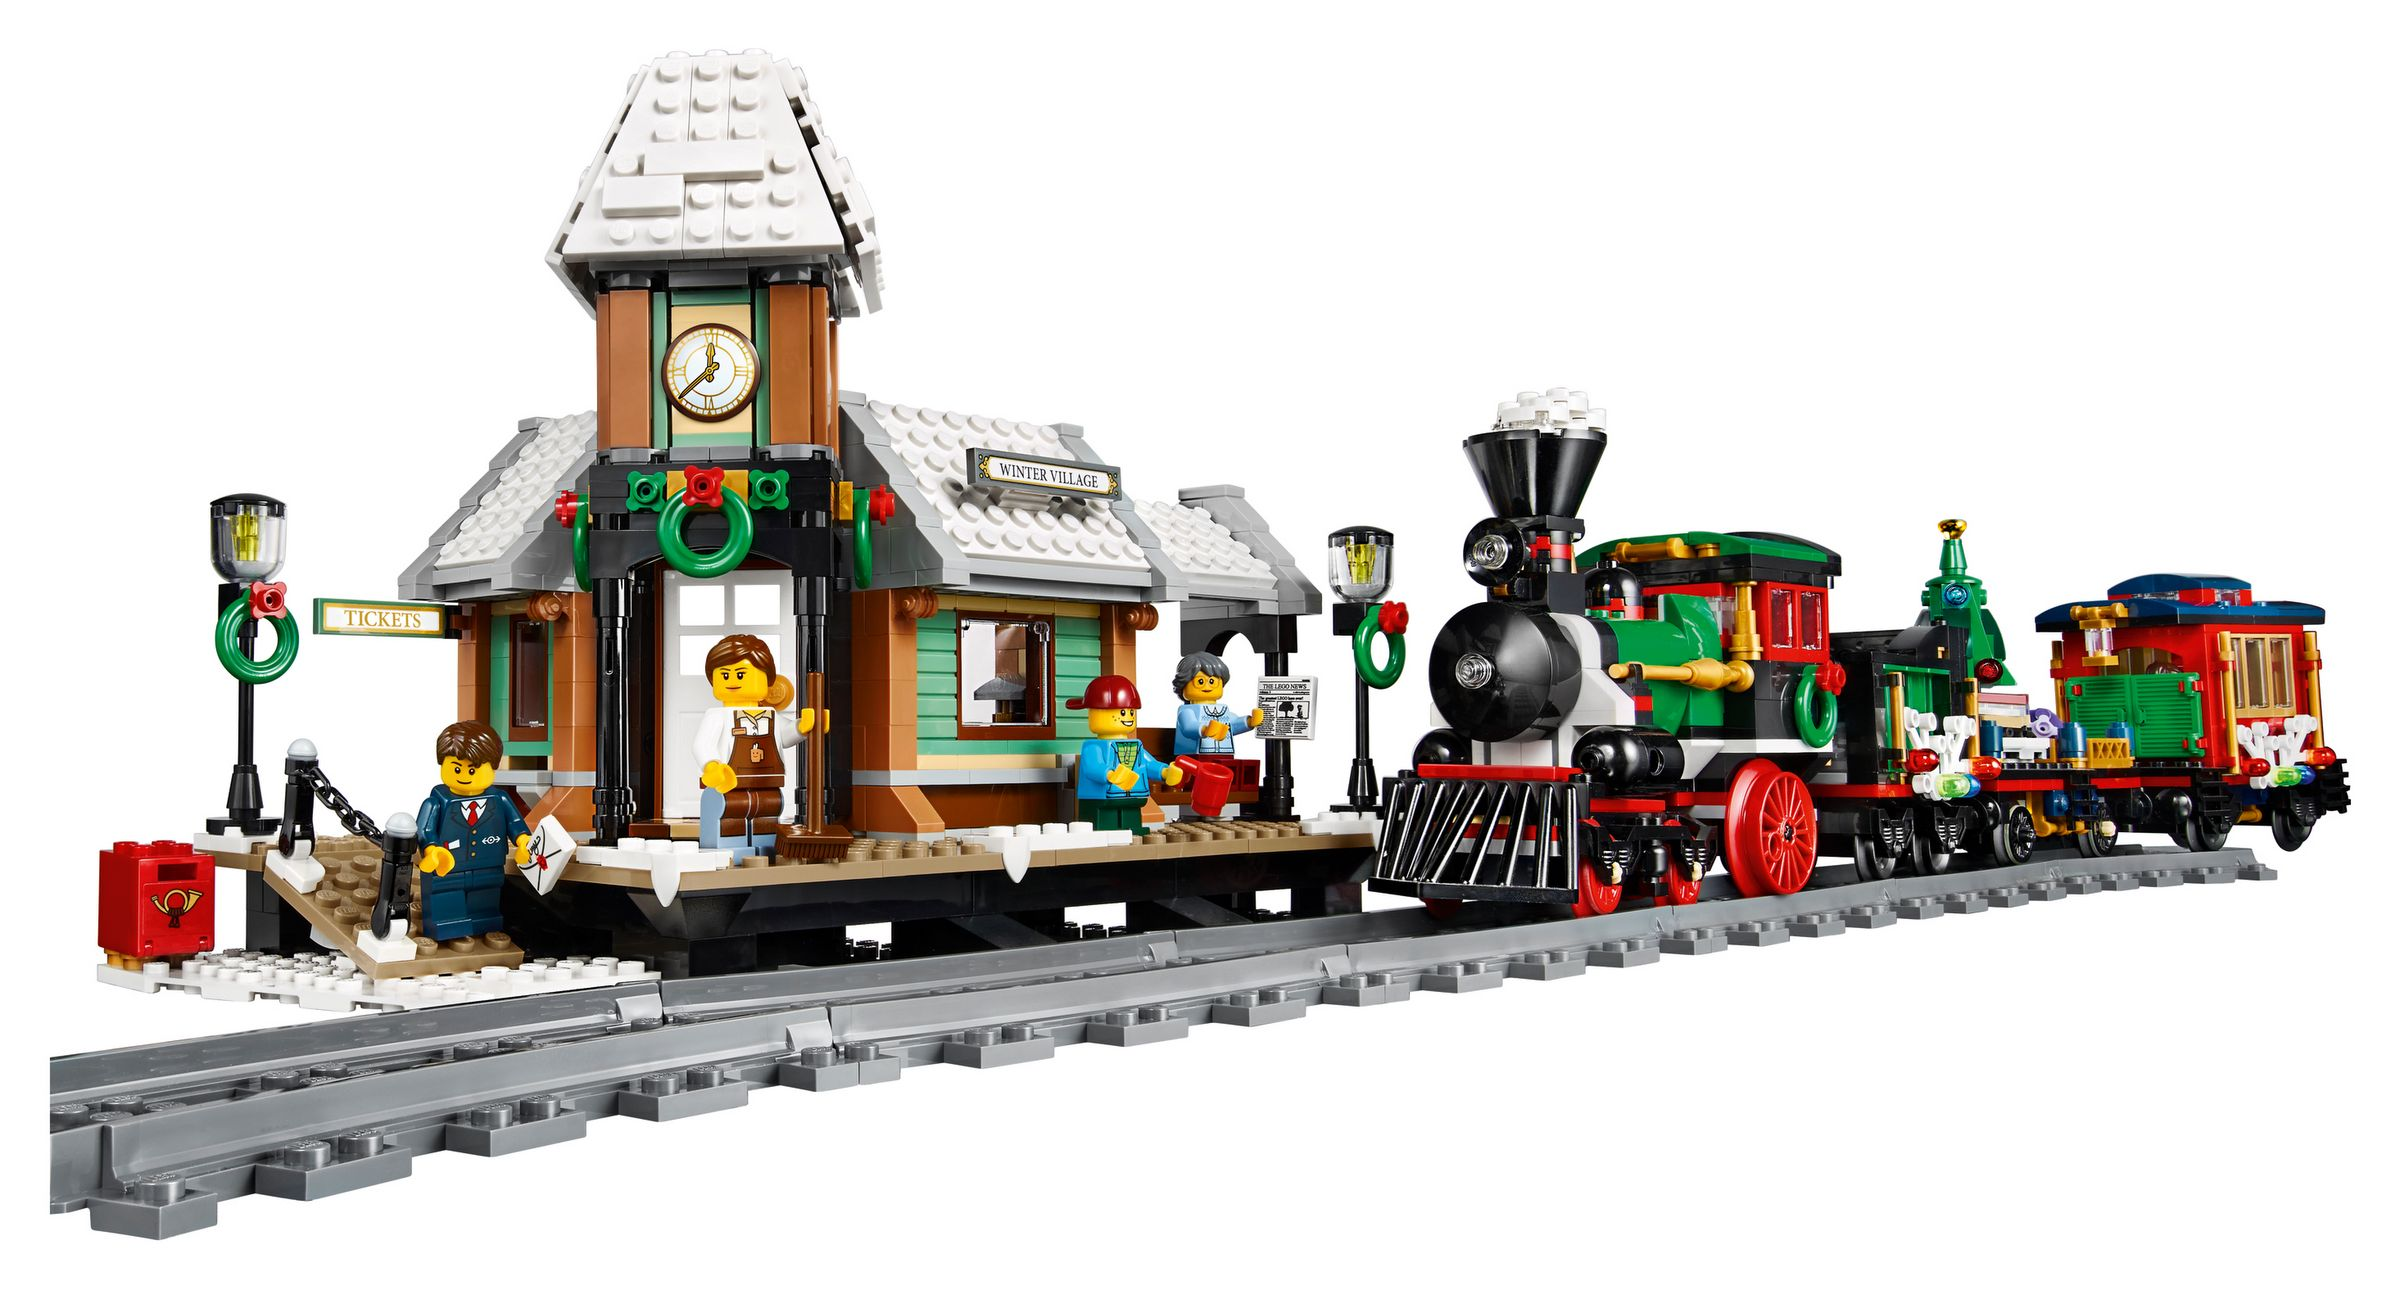 LEGO Advanced Models 10259 Winterlicher Bahnhof LEGO_10259_alt3.jpg